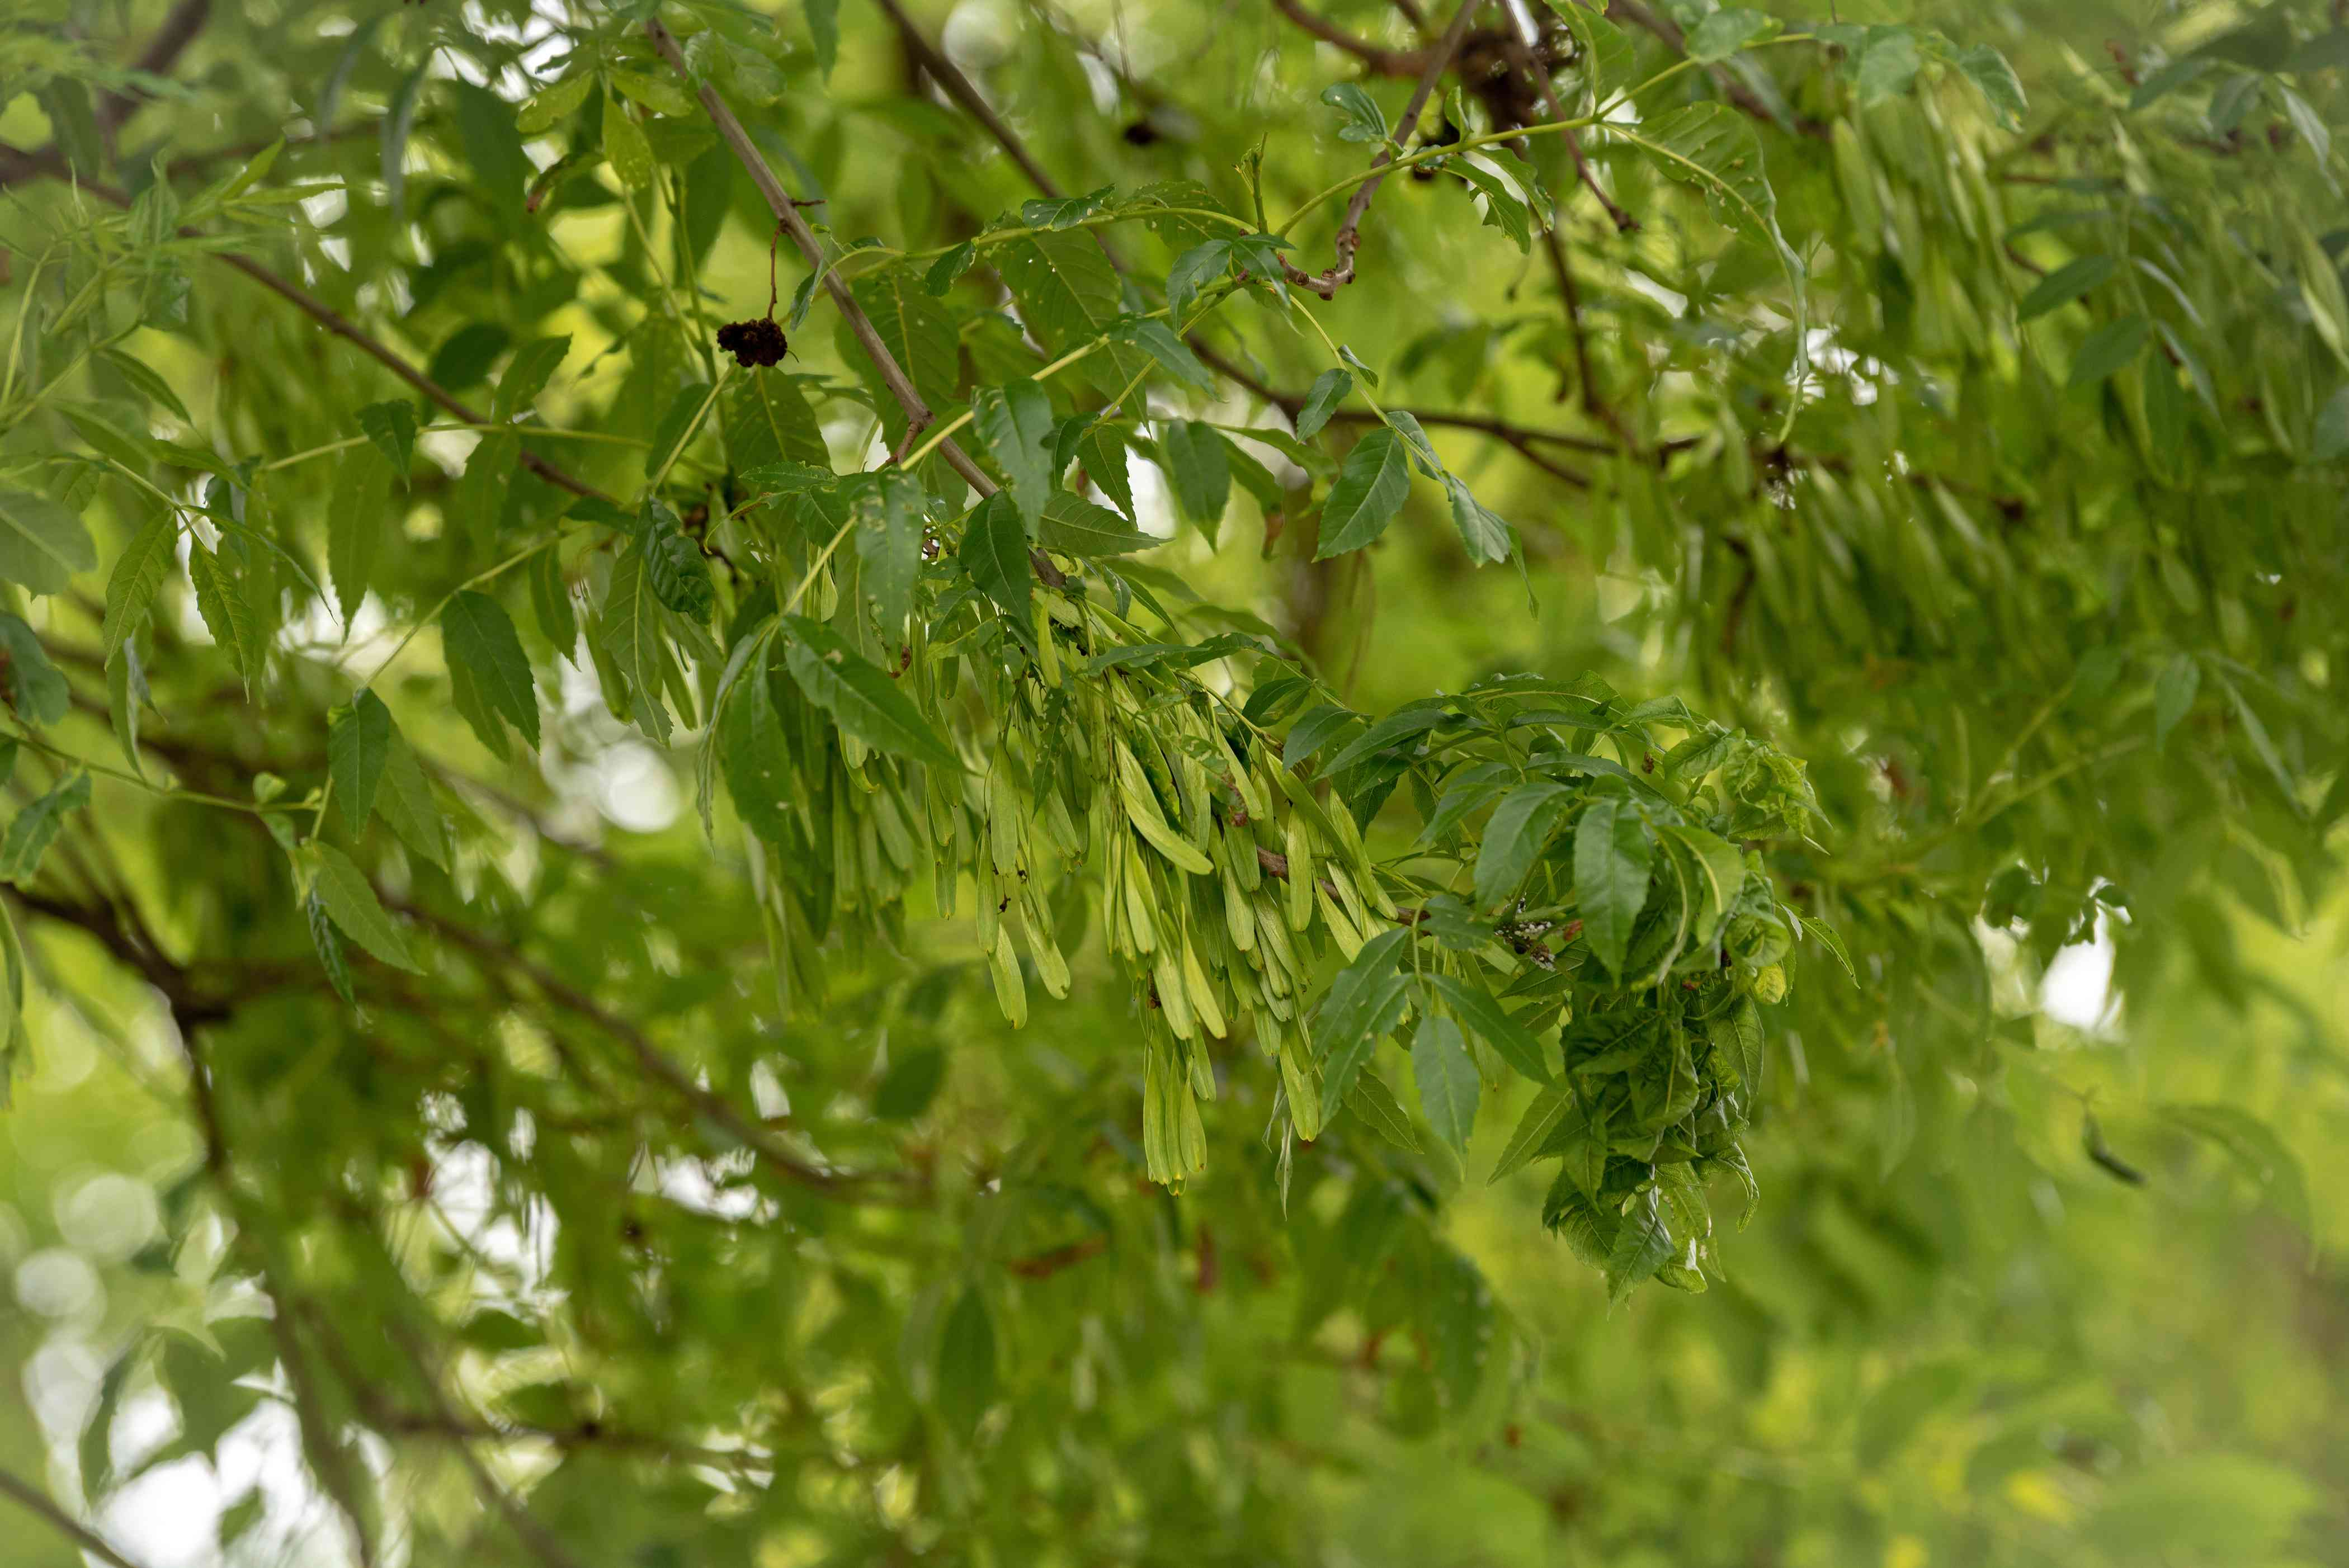 European ash tree branches with small light-green new leaves surrounded by medium-green leaves